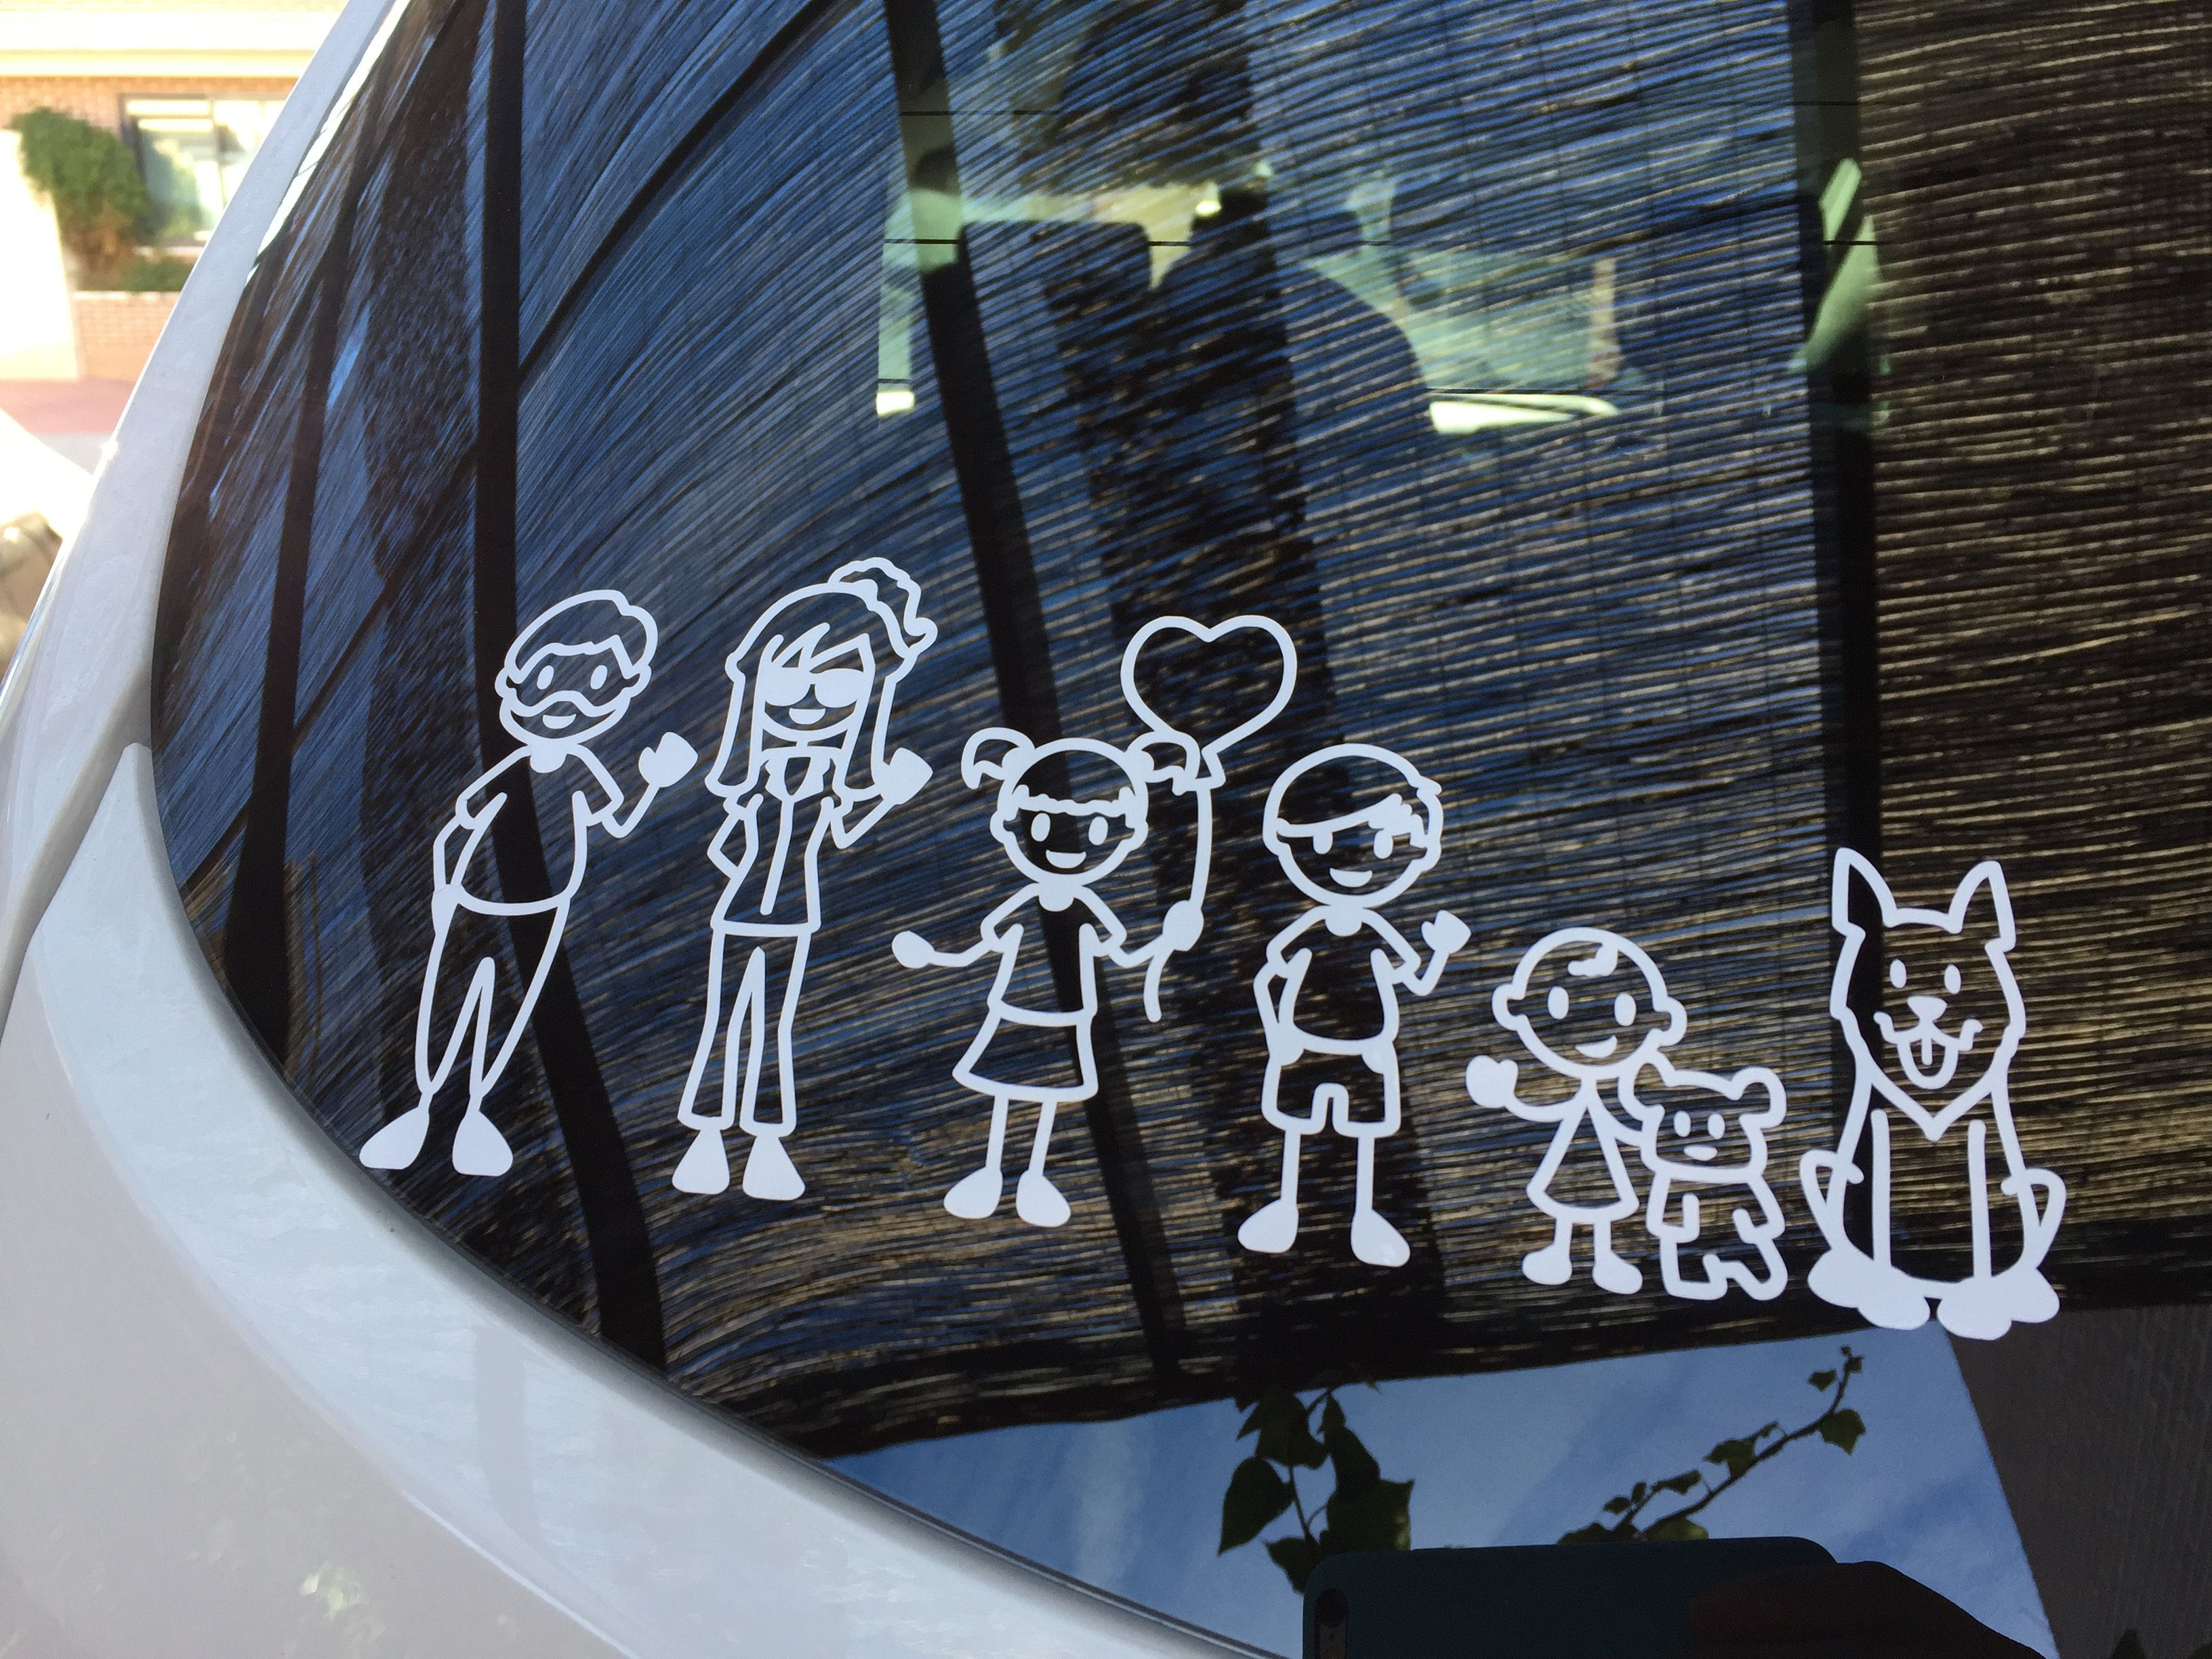 Car decals design your own - Design Your Own Unique Family Decal And Stick Out In The Traffic Familystickers